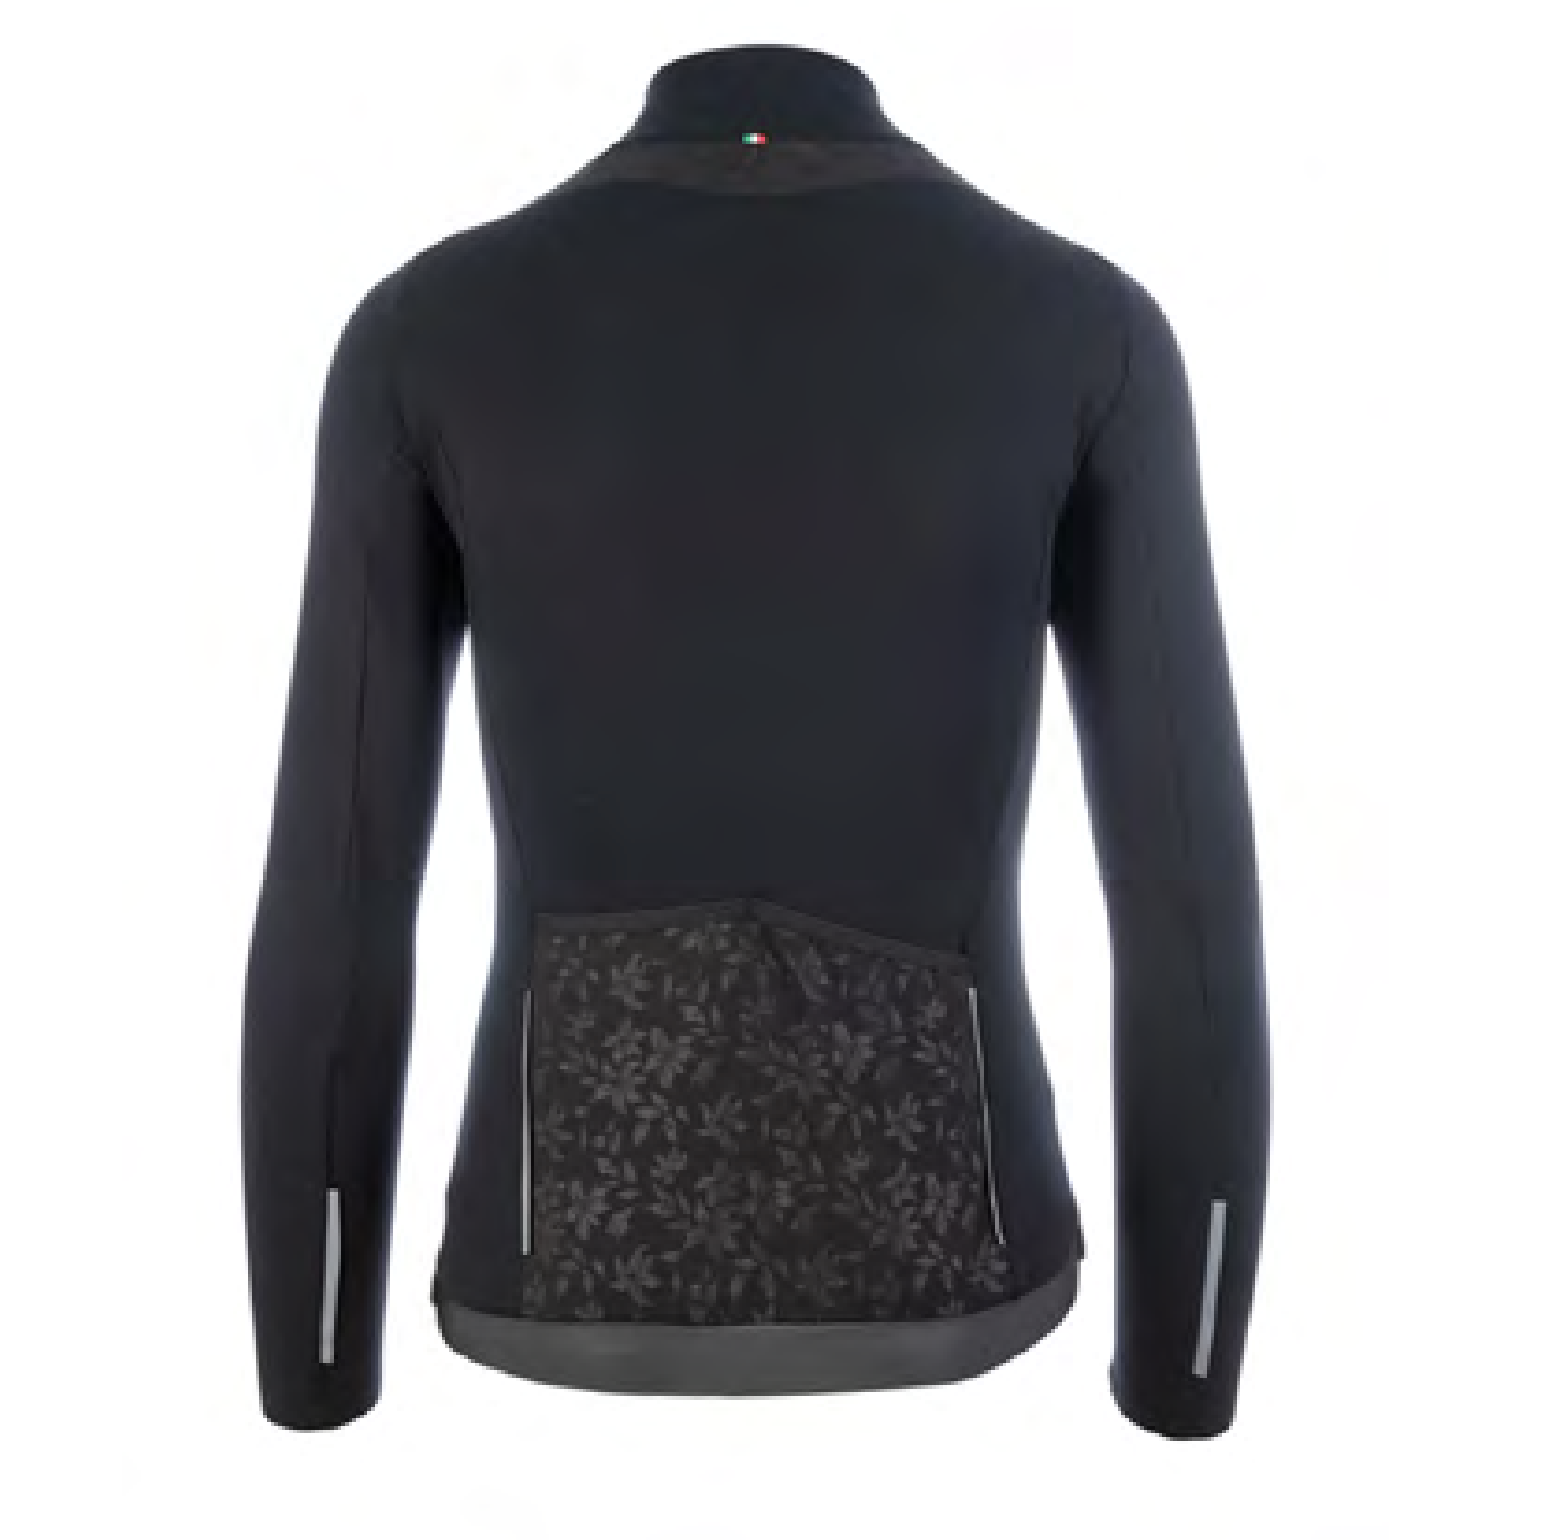 Q36.5 WOMENS JERSEY LONG SLEEVE BLACK LACE